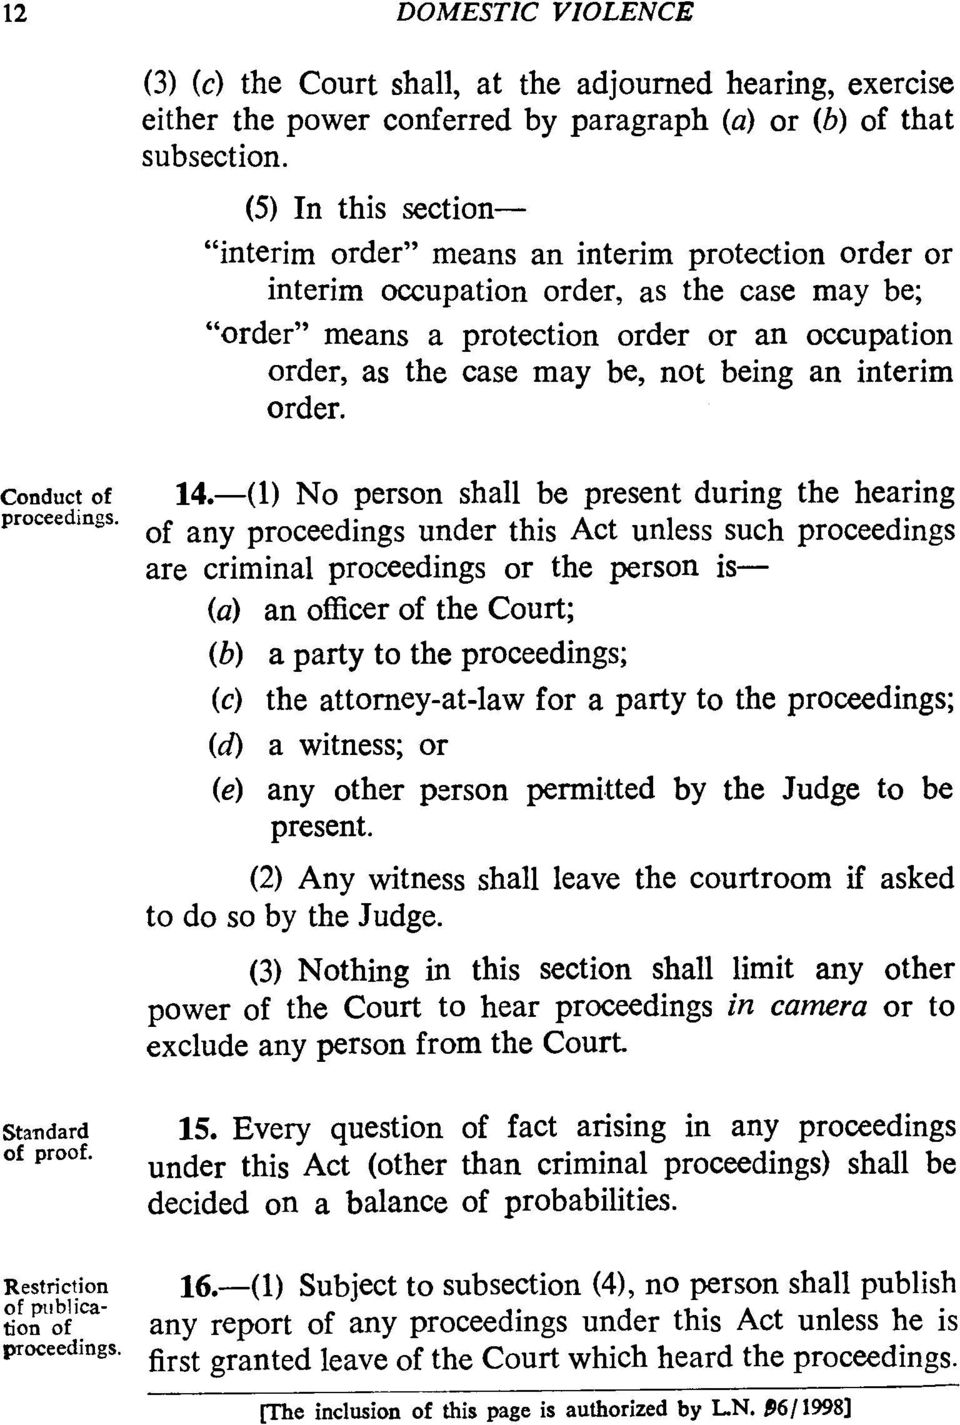 being an interim order. Conduct of proceedings. Standard of proof. Restriction of publication of proceedings. 14.